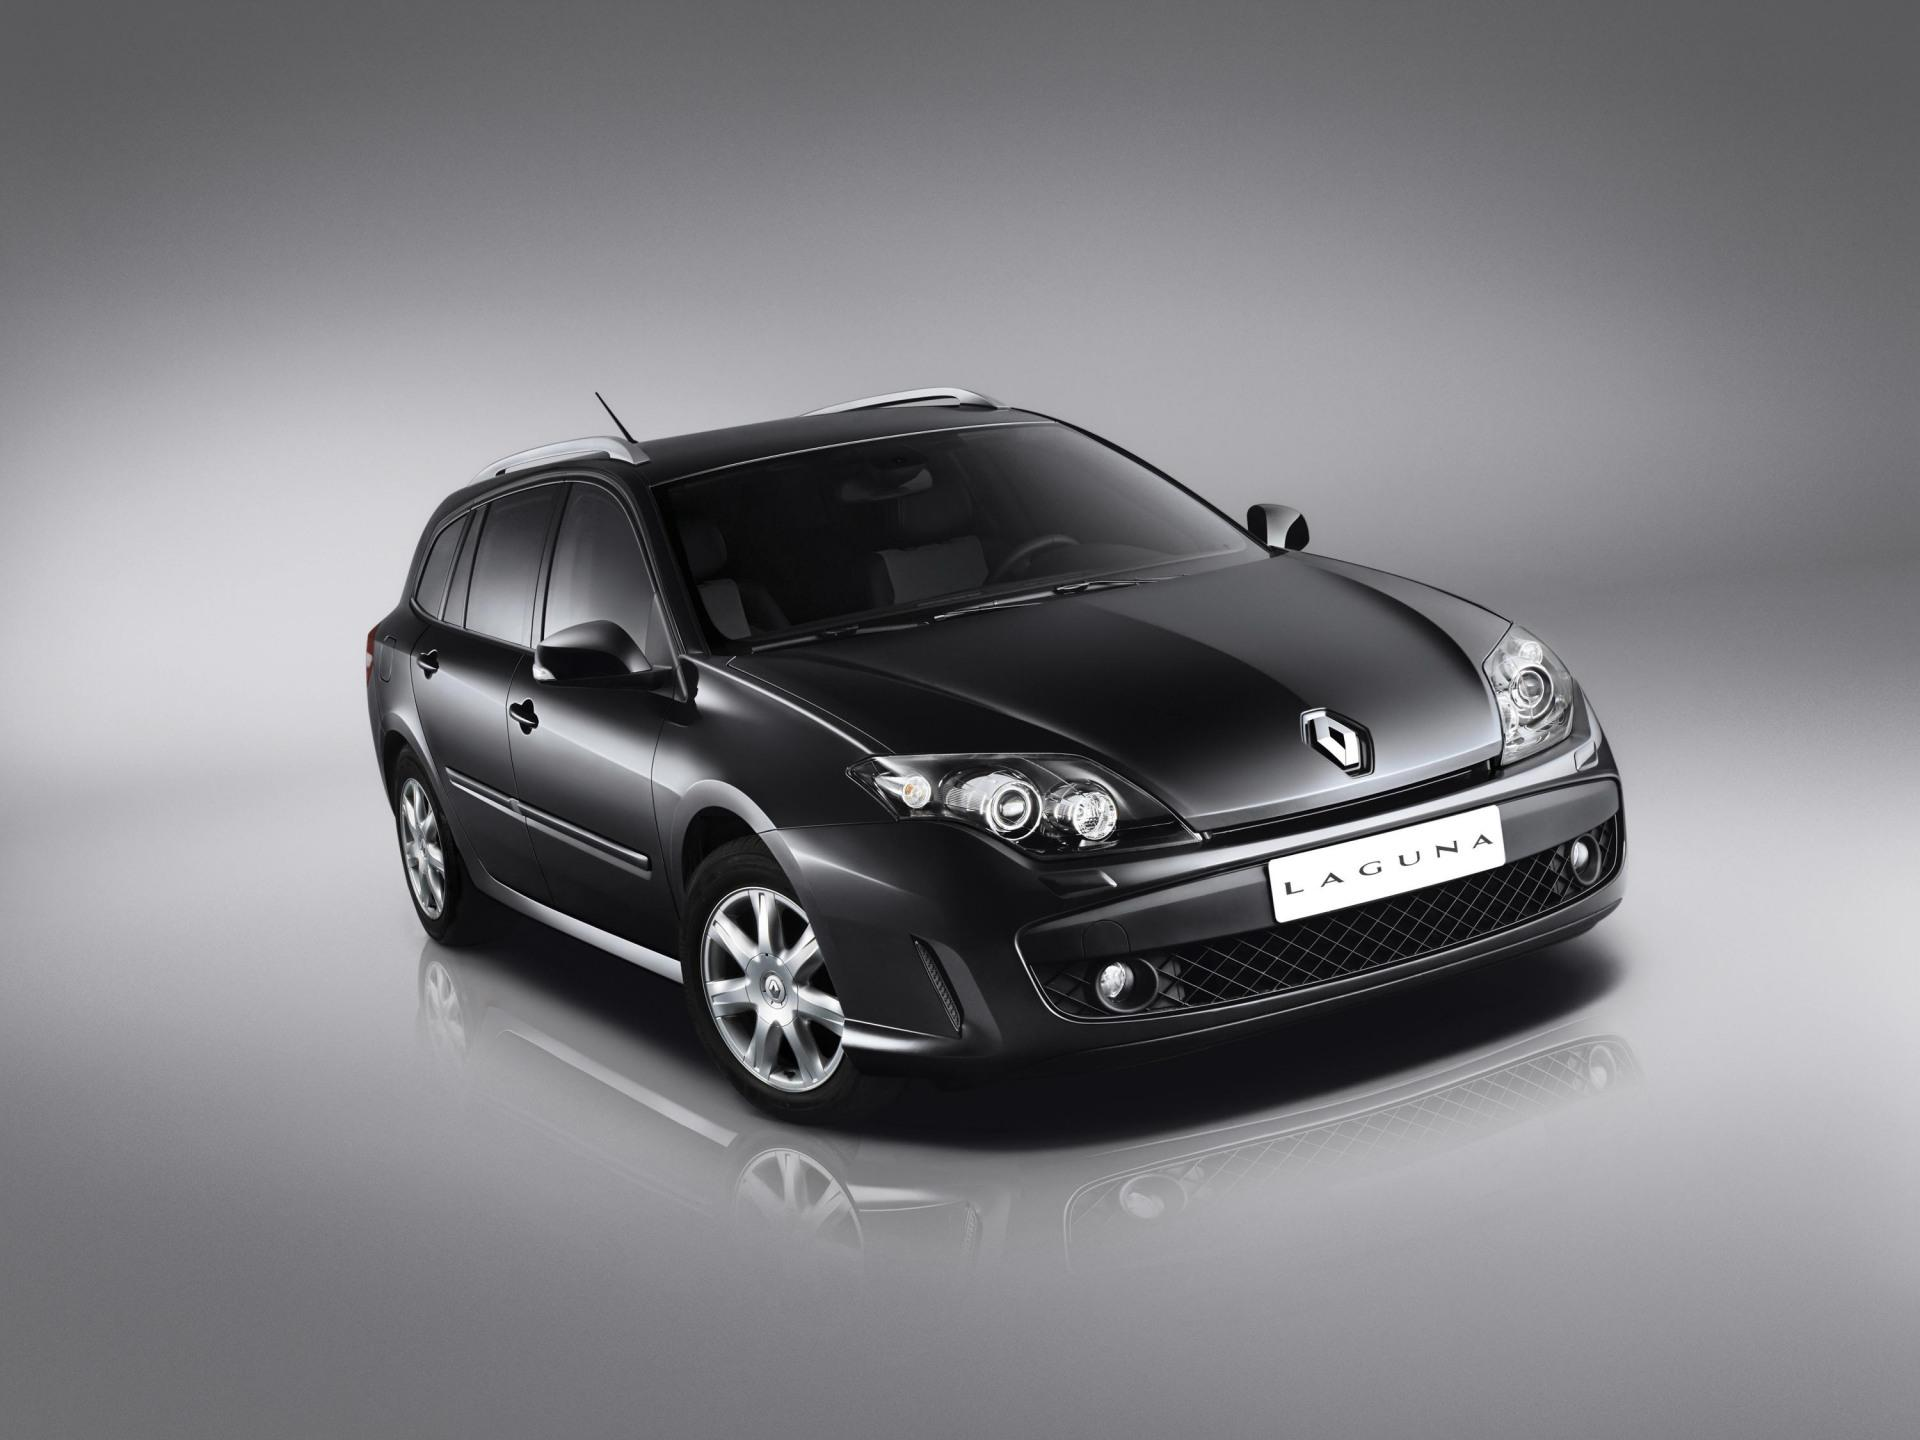 2009 renault laguna black edition. Black Bedroom Furniture Sets. Home Design Ideas